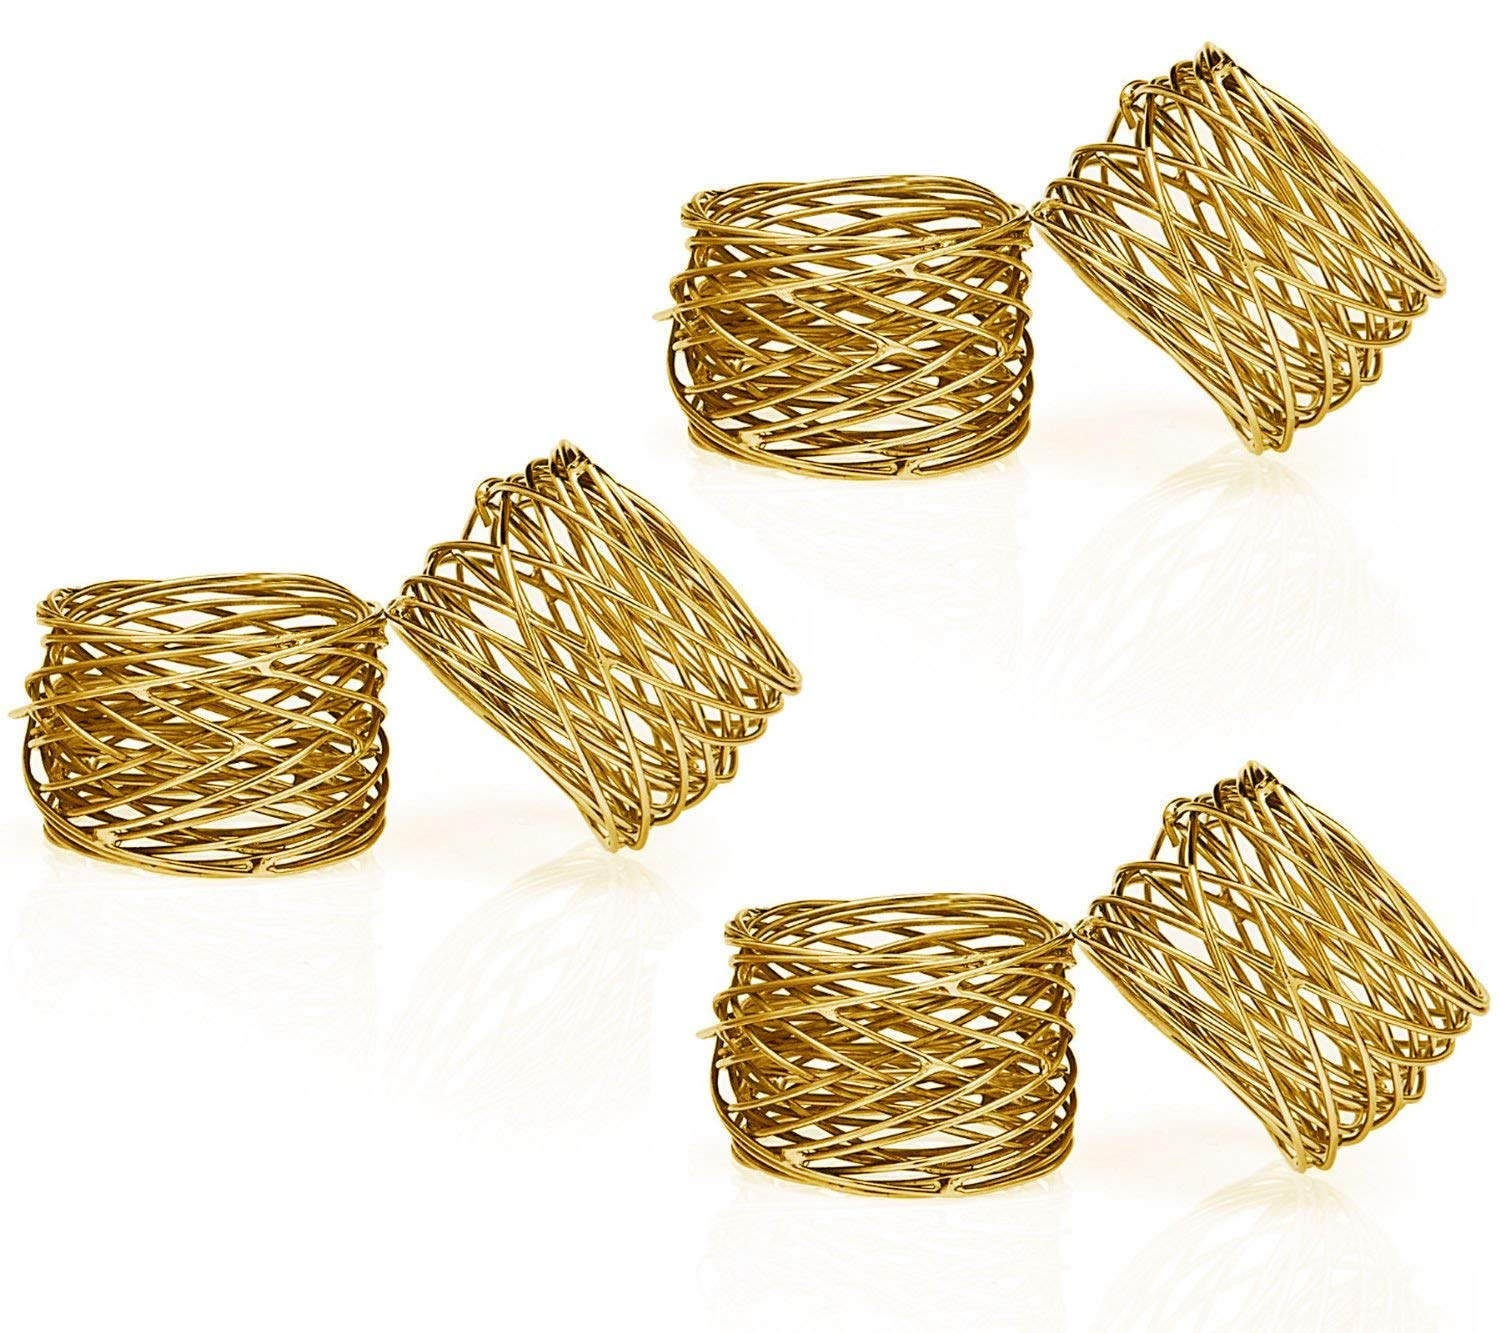 ITOS365 Handmade Gold Round Mesh Napkin Rings Holder for Dinning Table Parties Everyday, Set of 6 by ITOS365